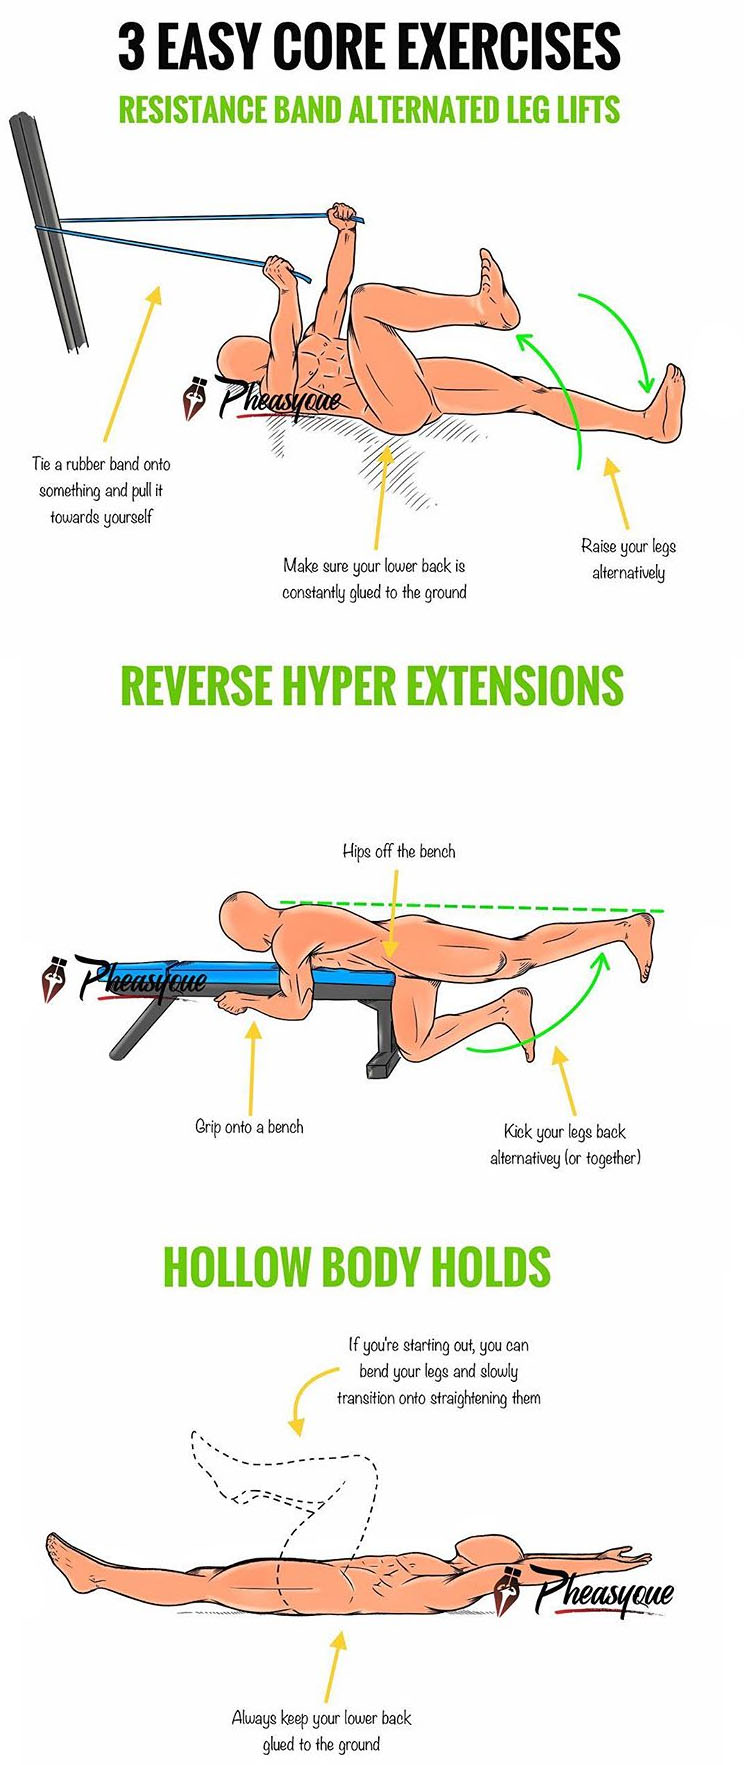 EXERCISES FOR YOUR CORE